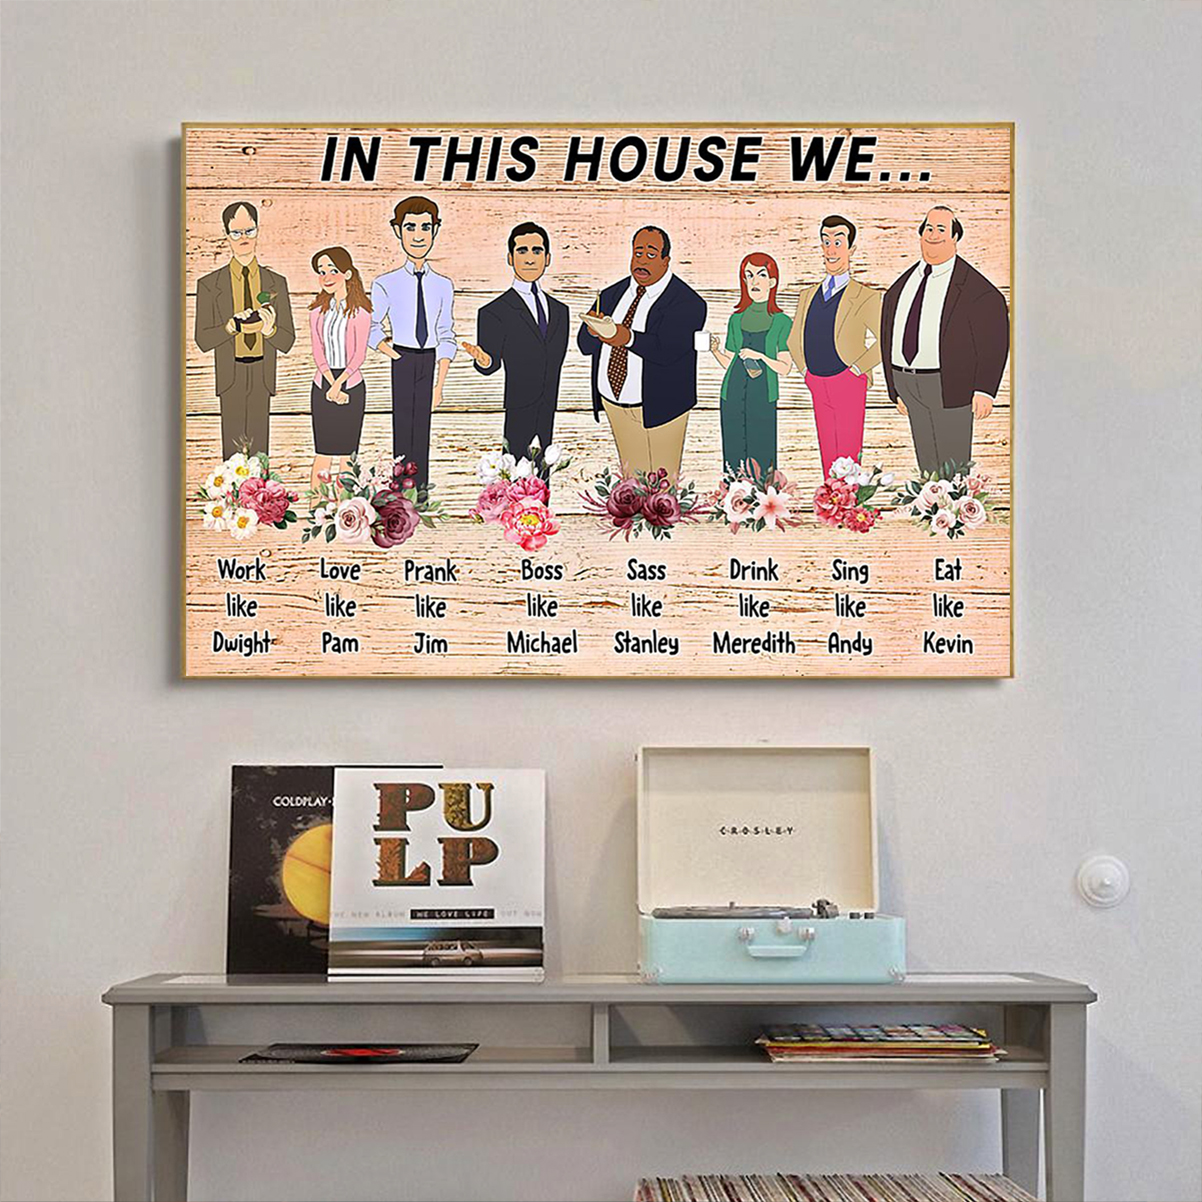 The office in this house we poster A1